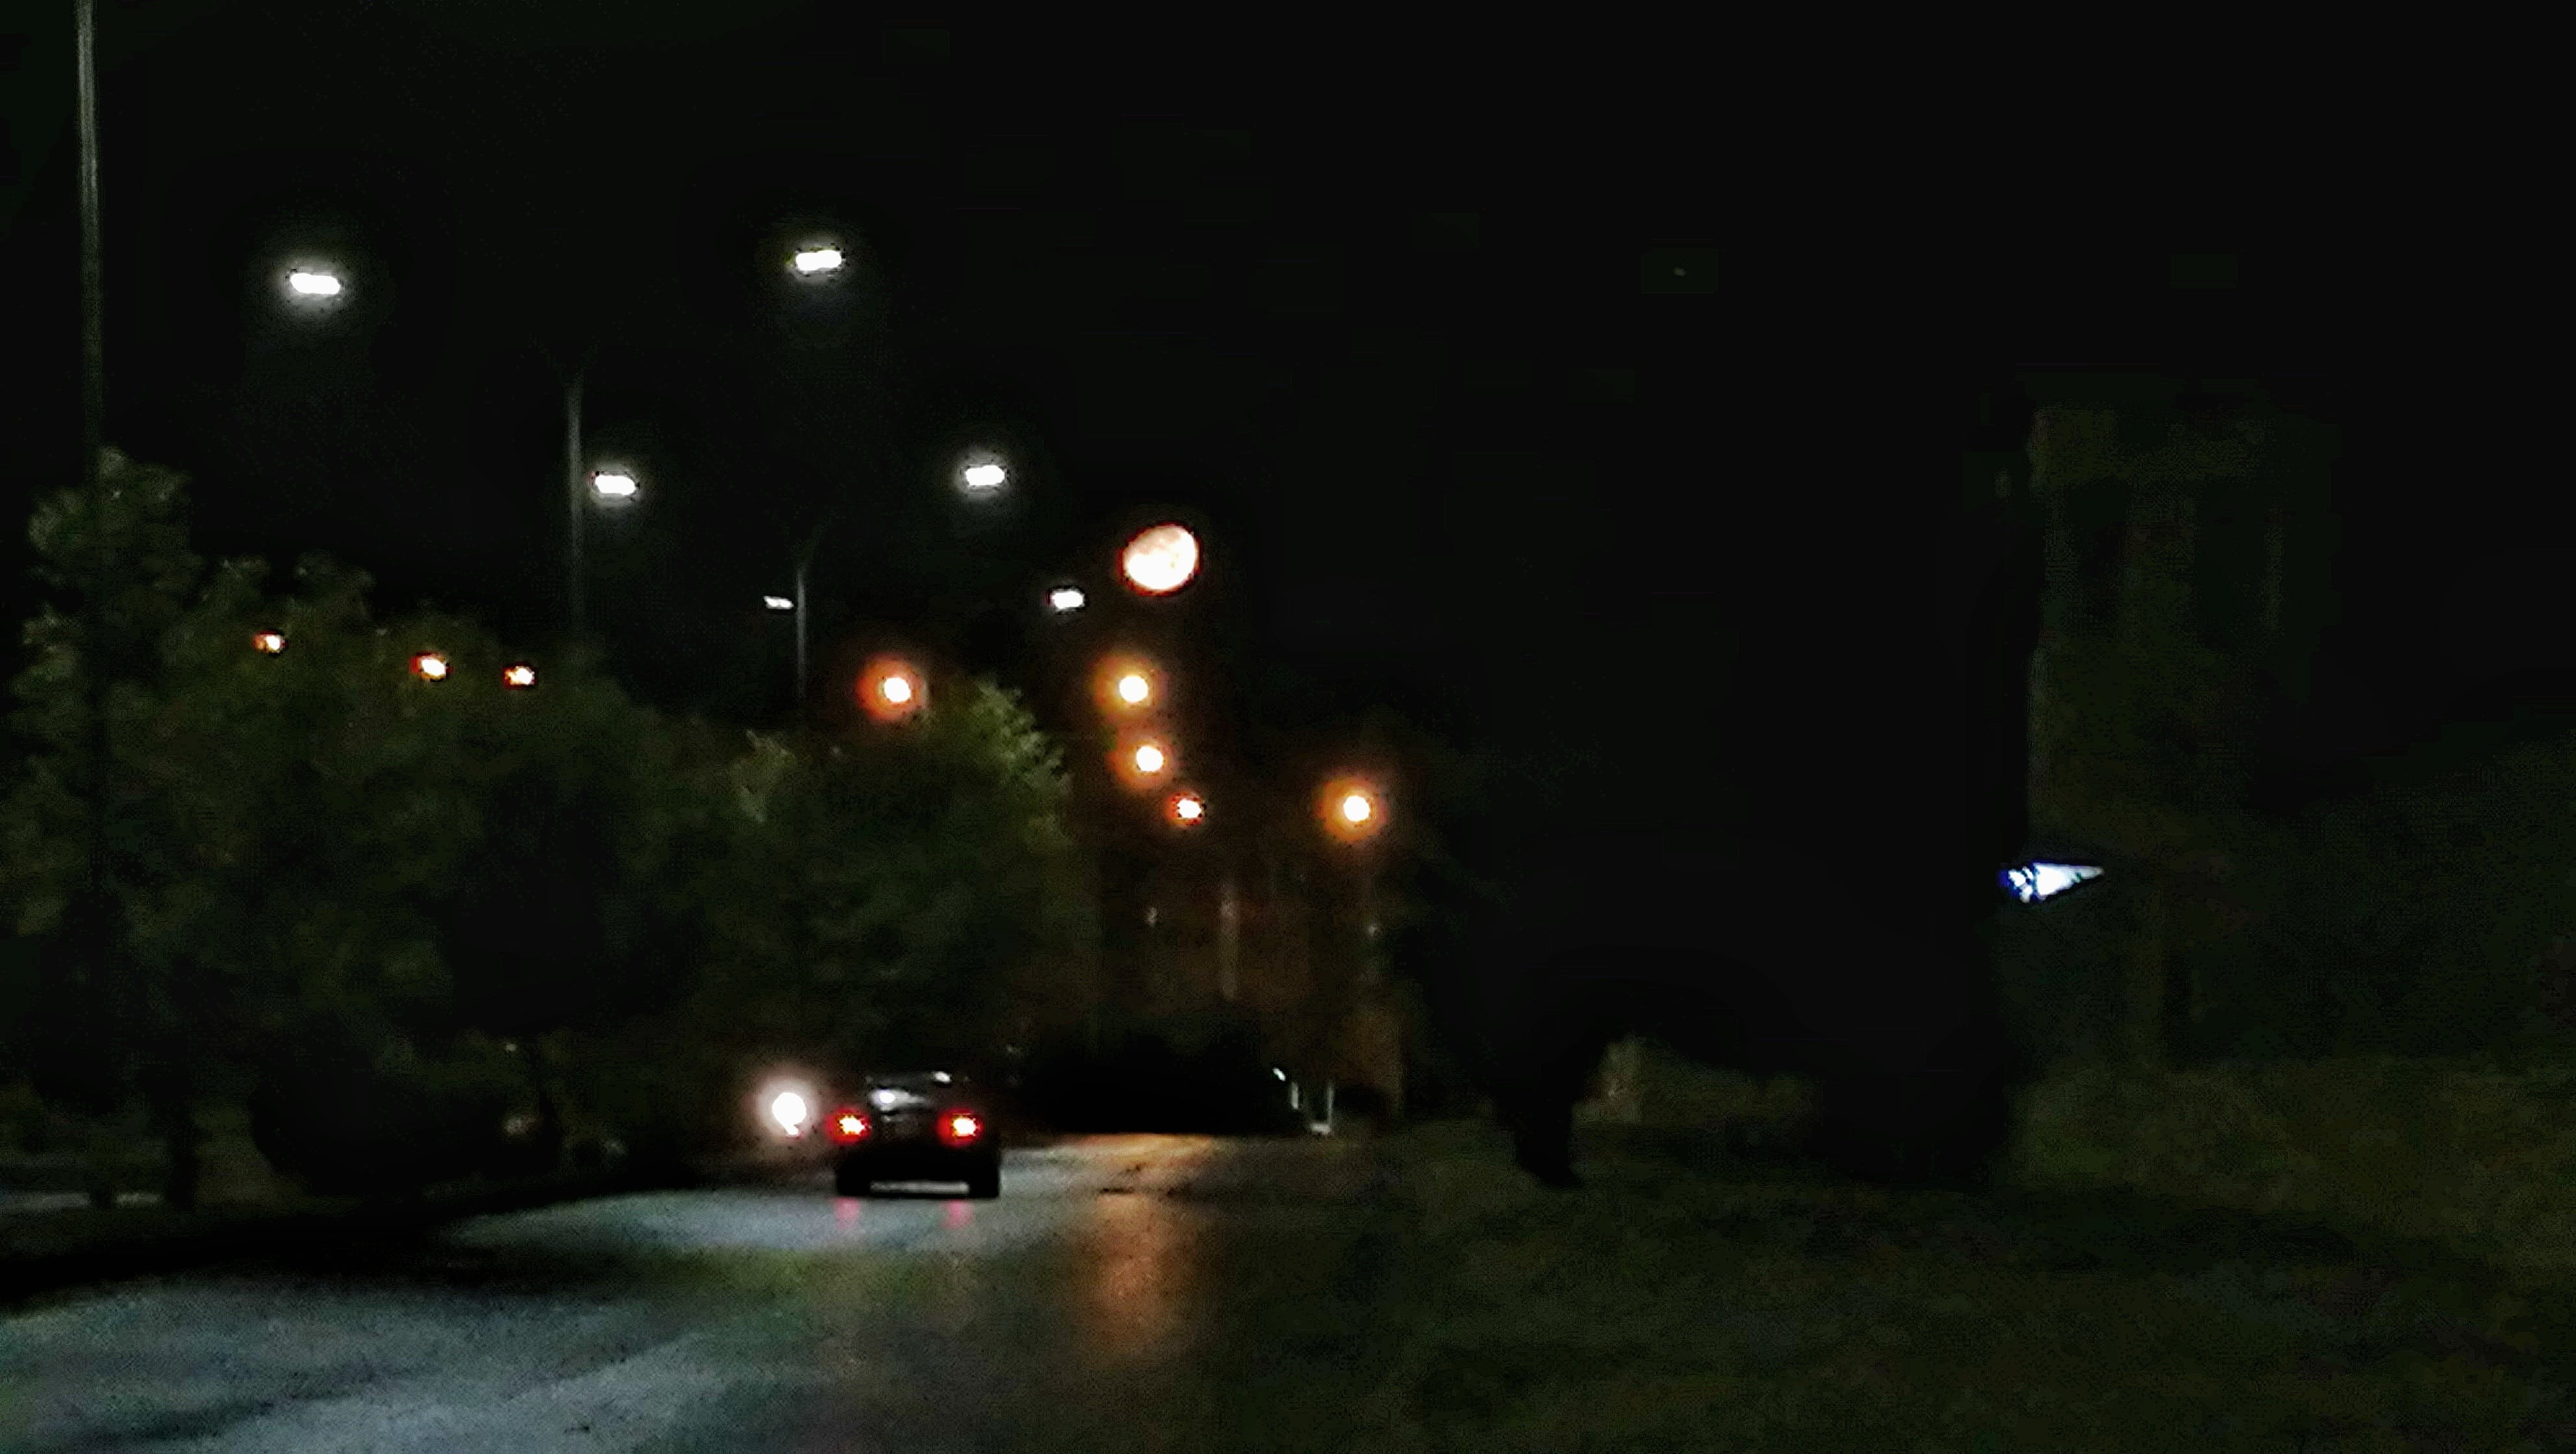 Free stock photo of car, moon, nightshot, street lights